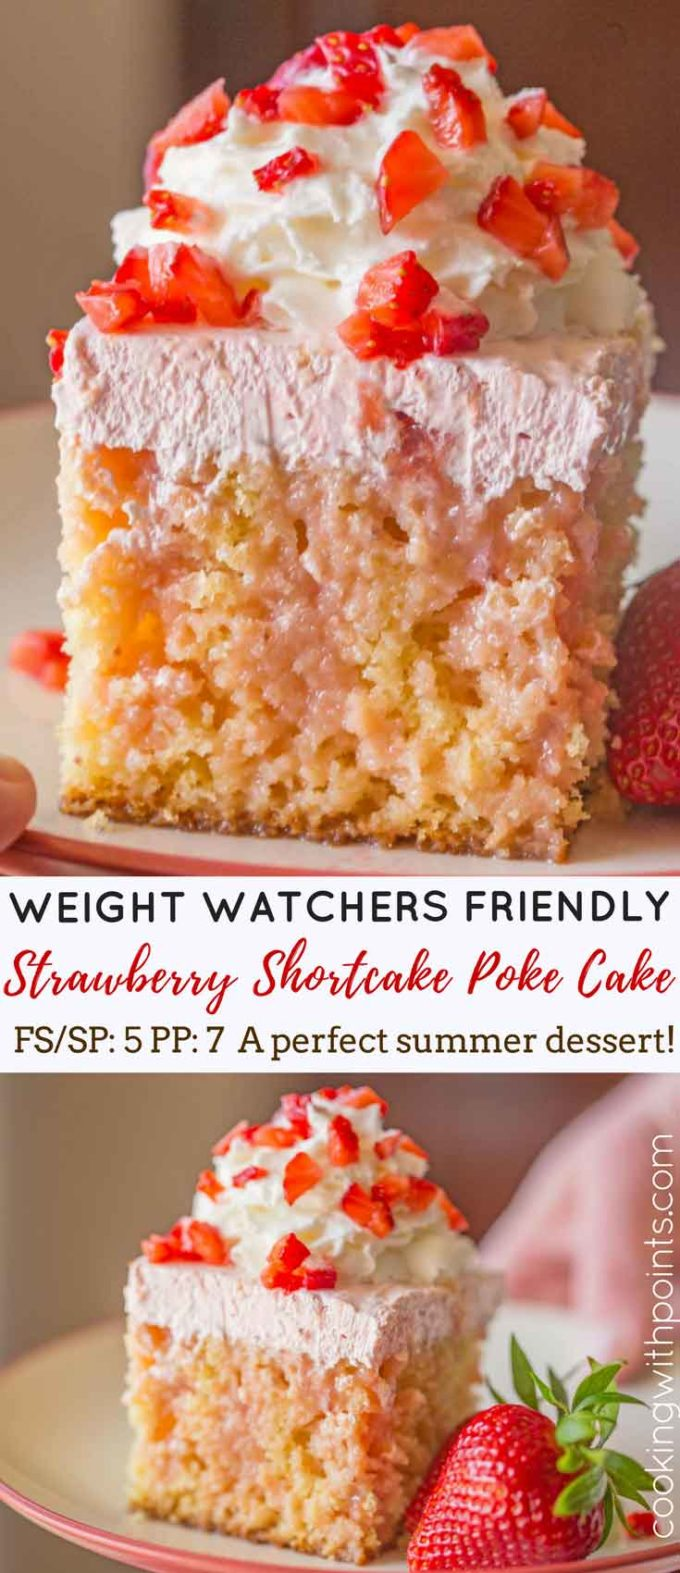 Weight Watchers Strawberry Poke Cake